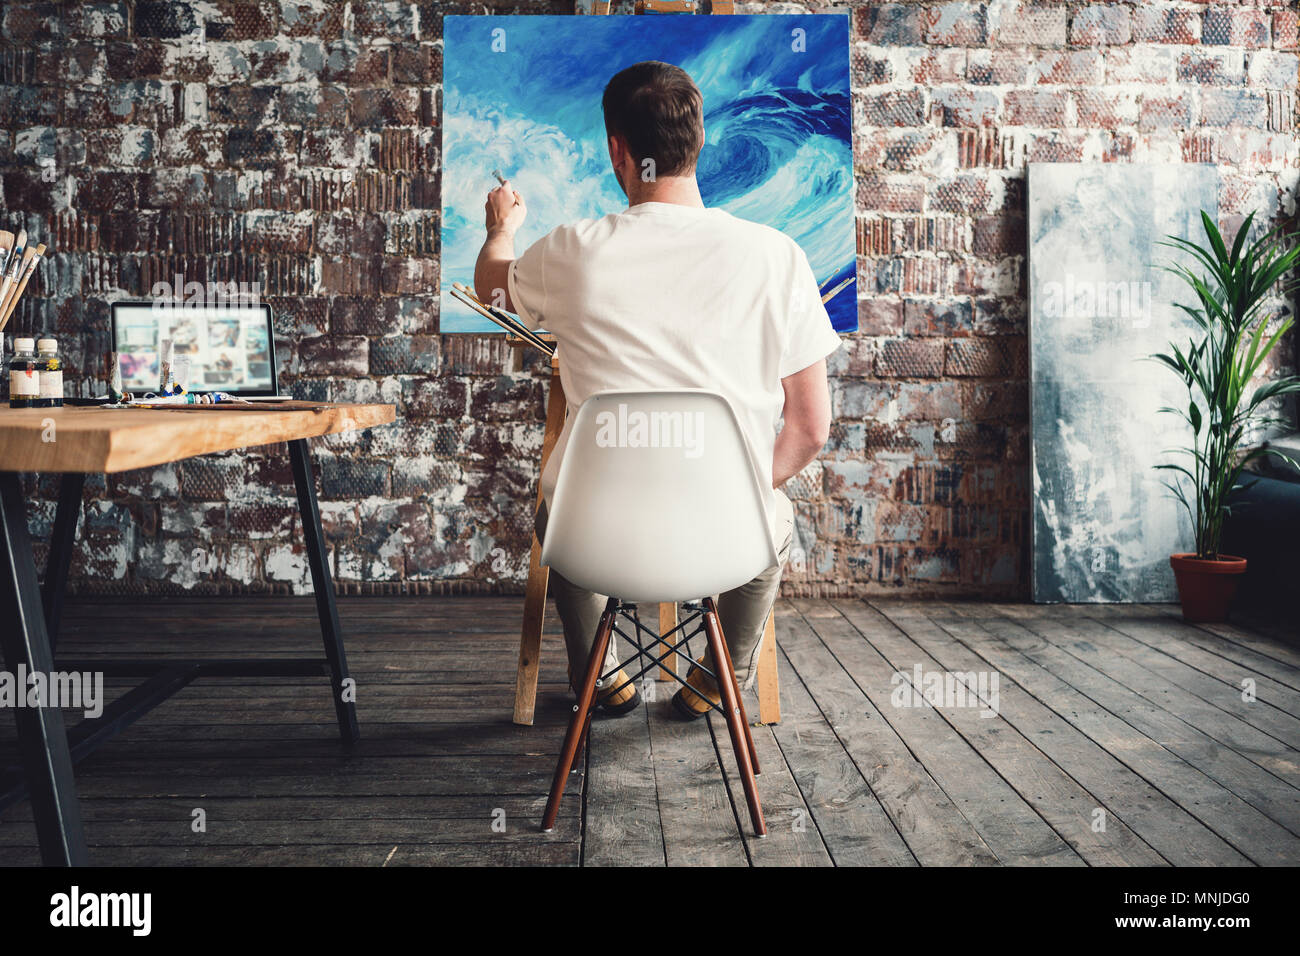 Artist in art studio sits on chair in front of canvas on easel and drawing. Painter work in workshop. Working process. Hobby concept Stock Photo